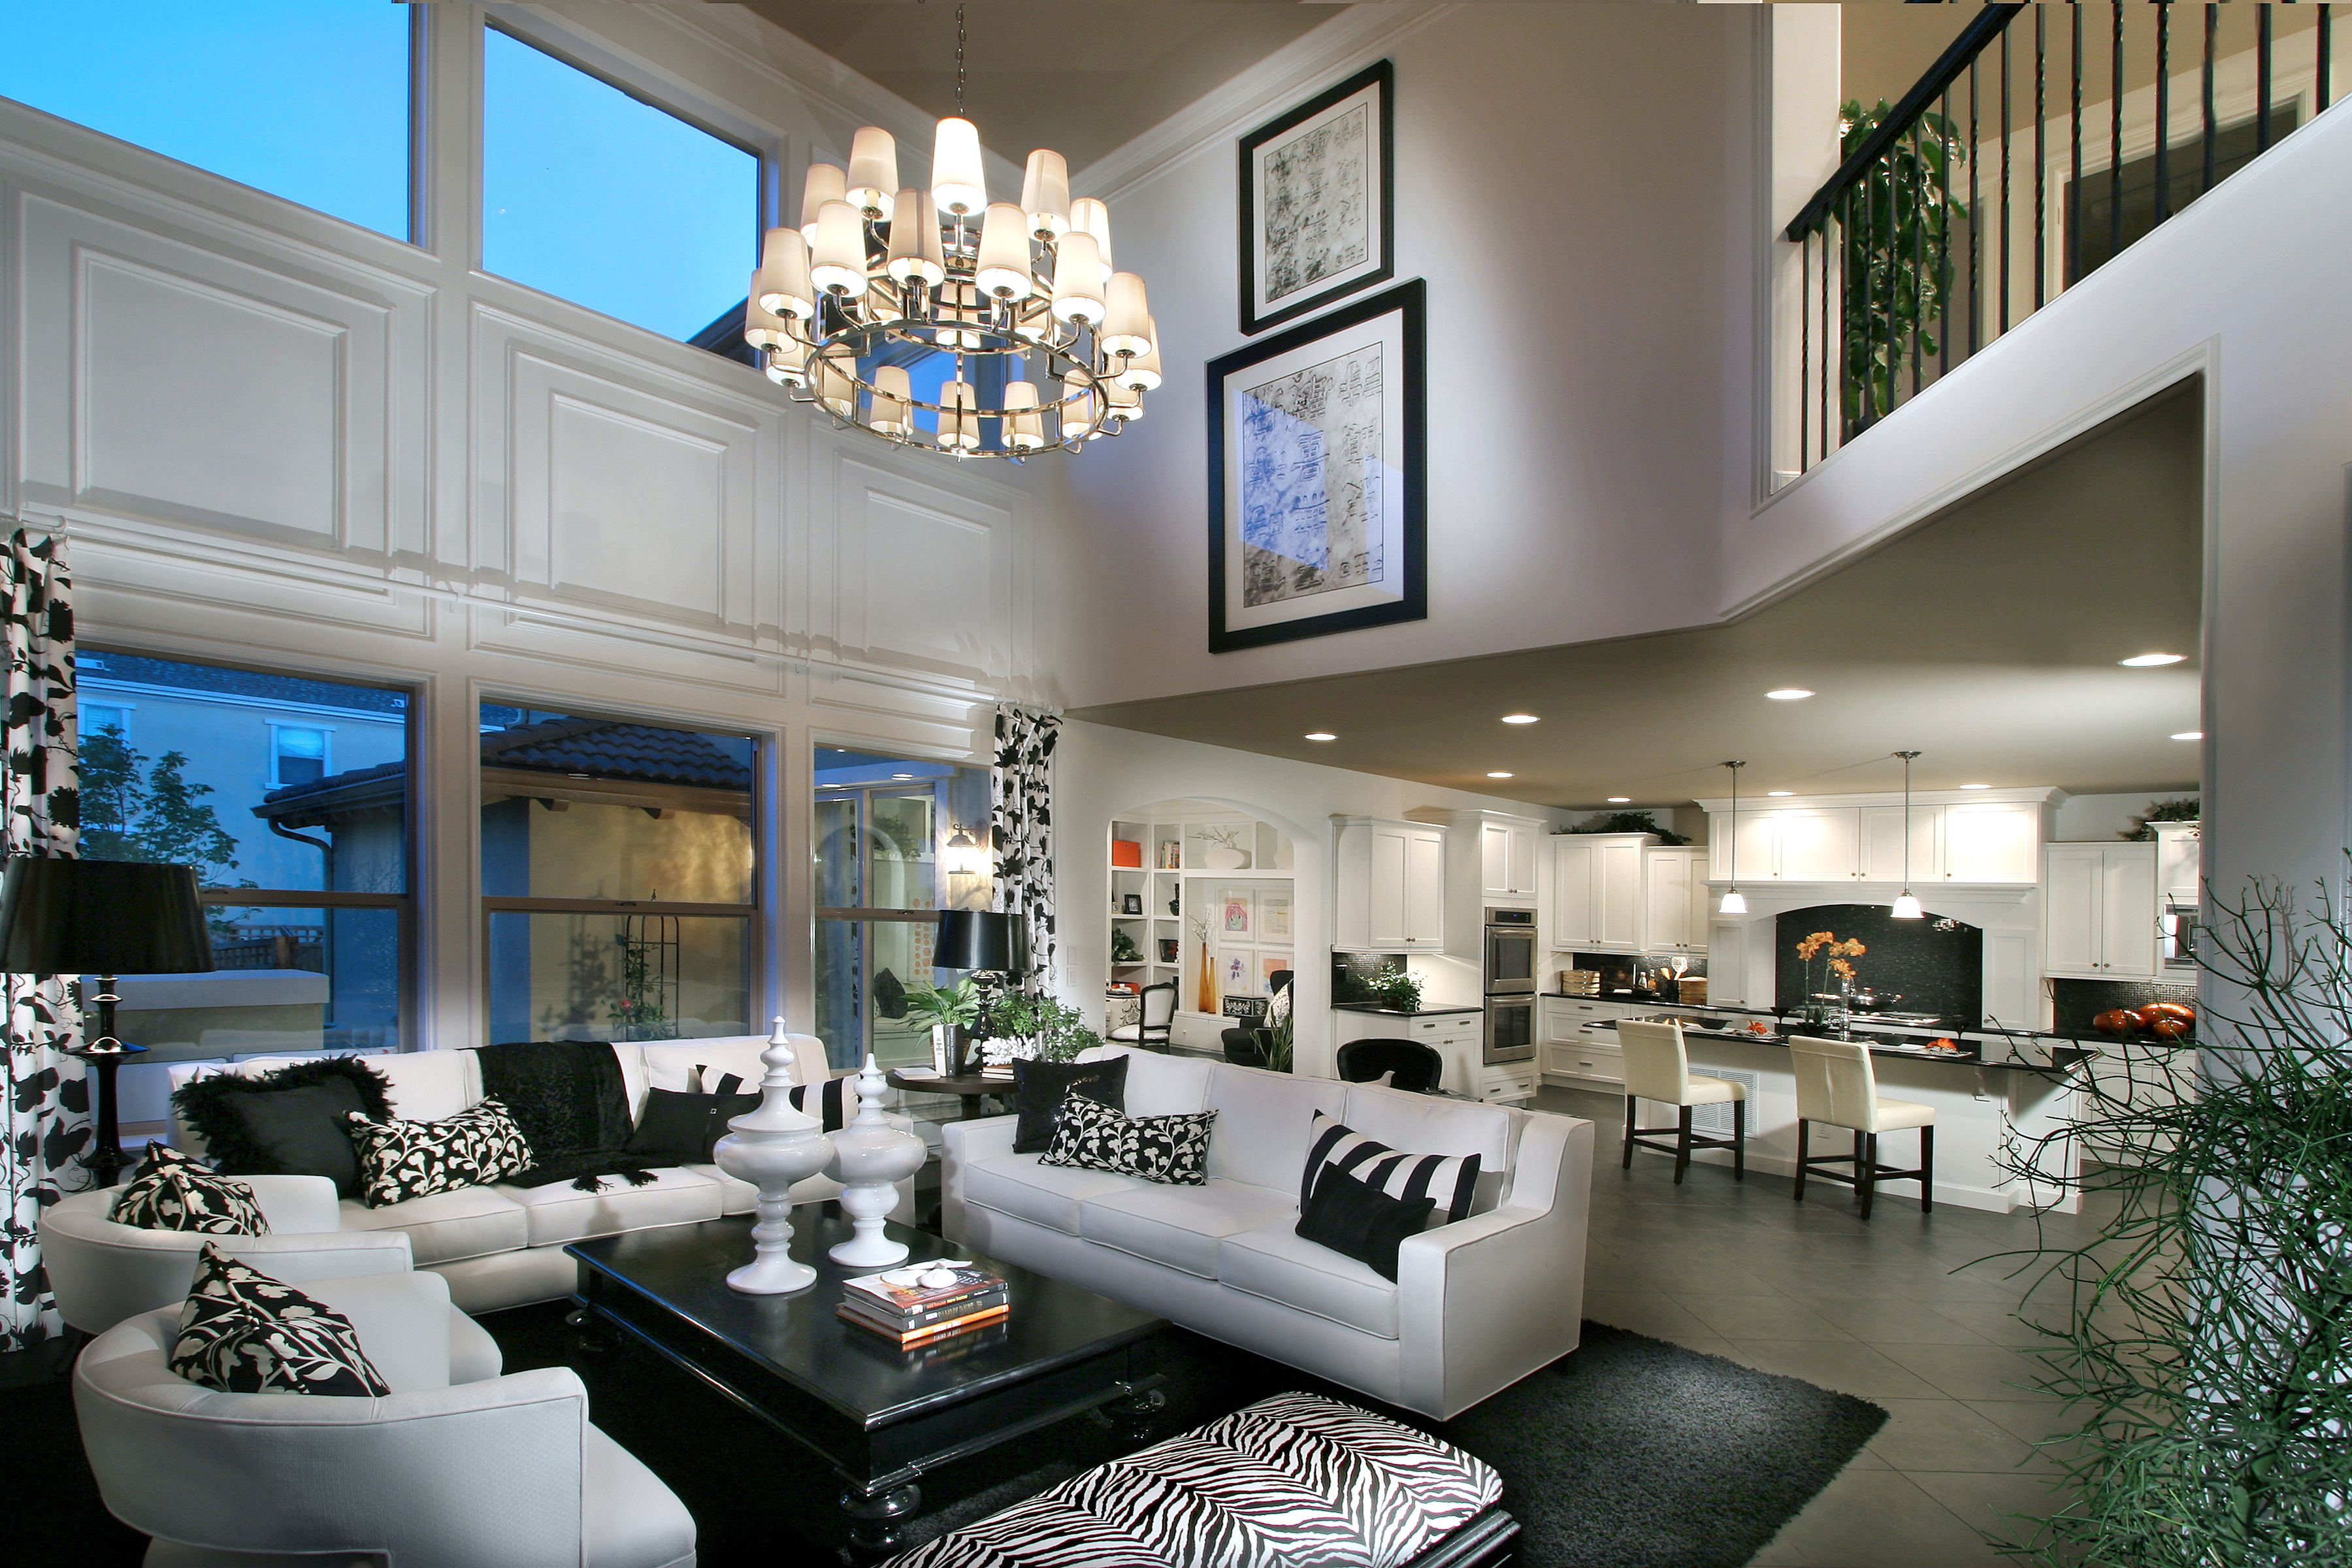 Best The Black And White Theme Looks Great In The Open Space Luxury House Interior Design Home 400 x 300